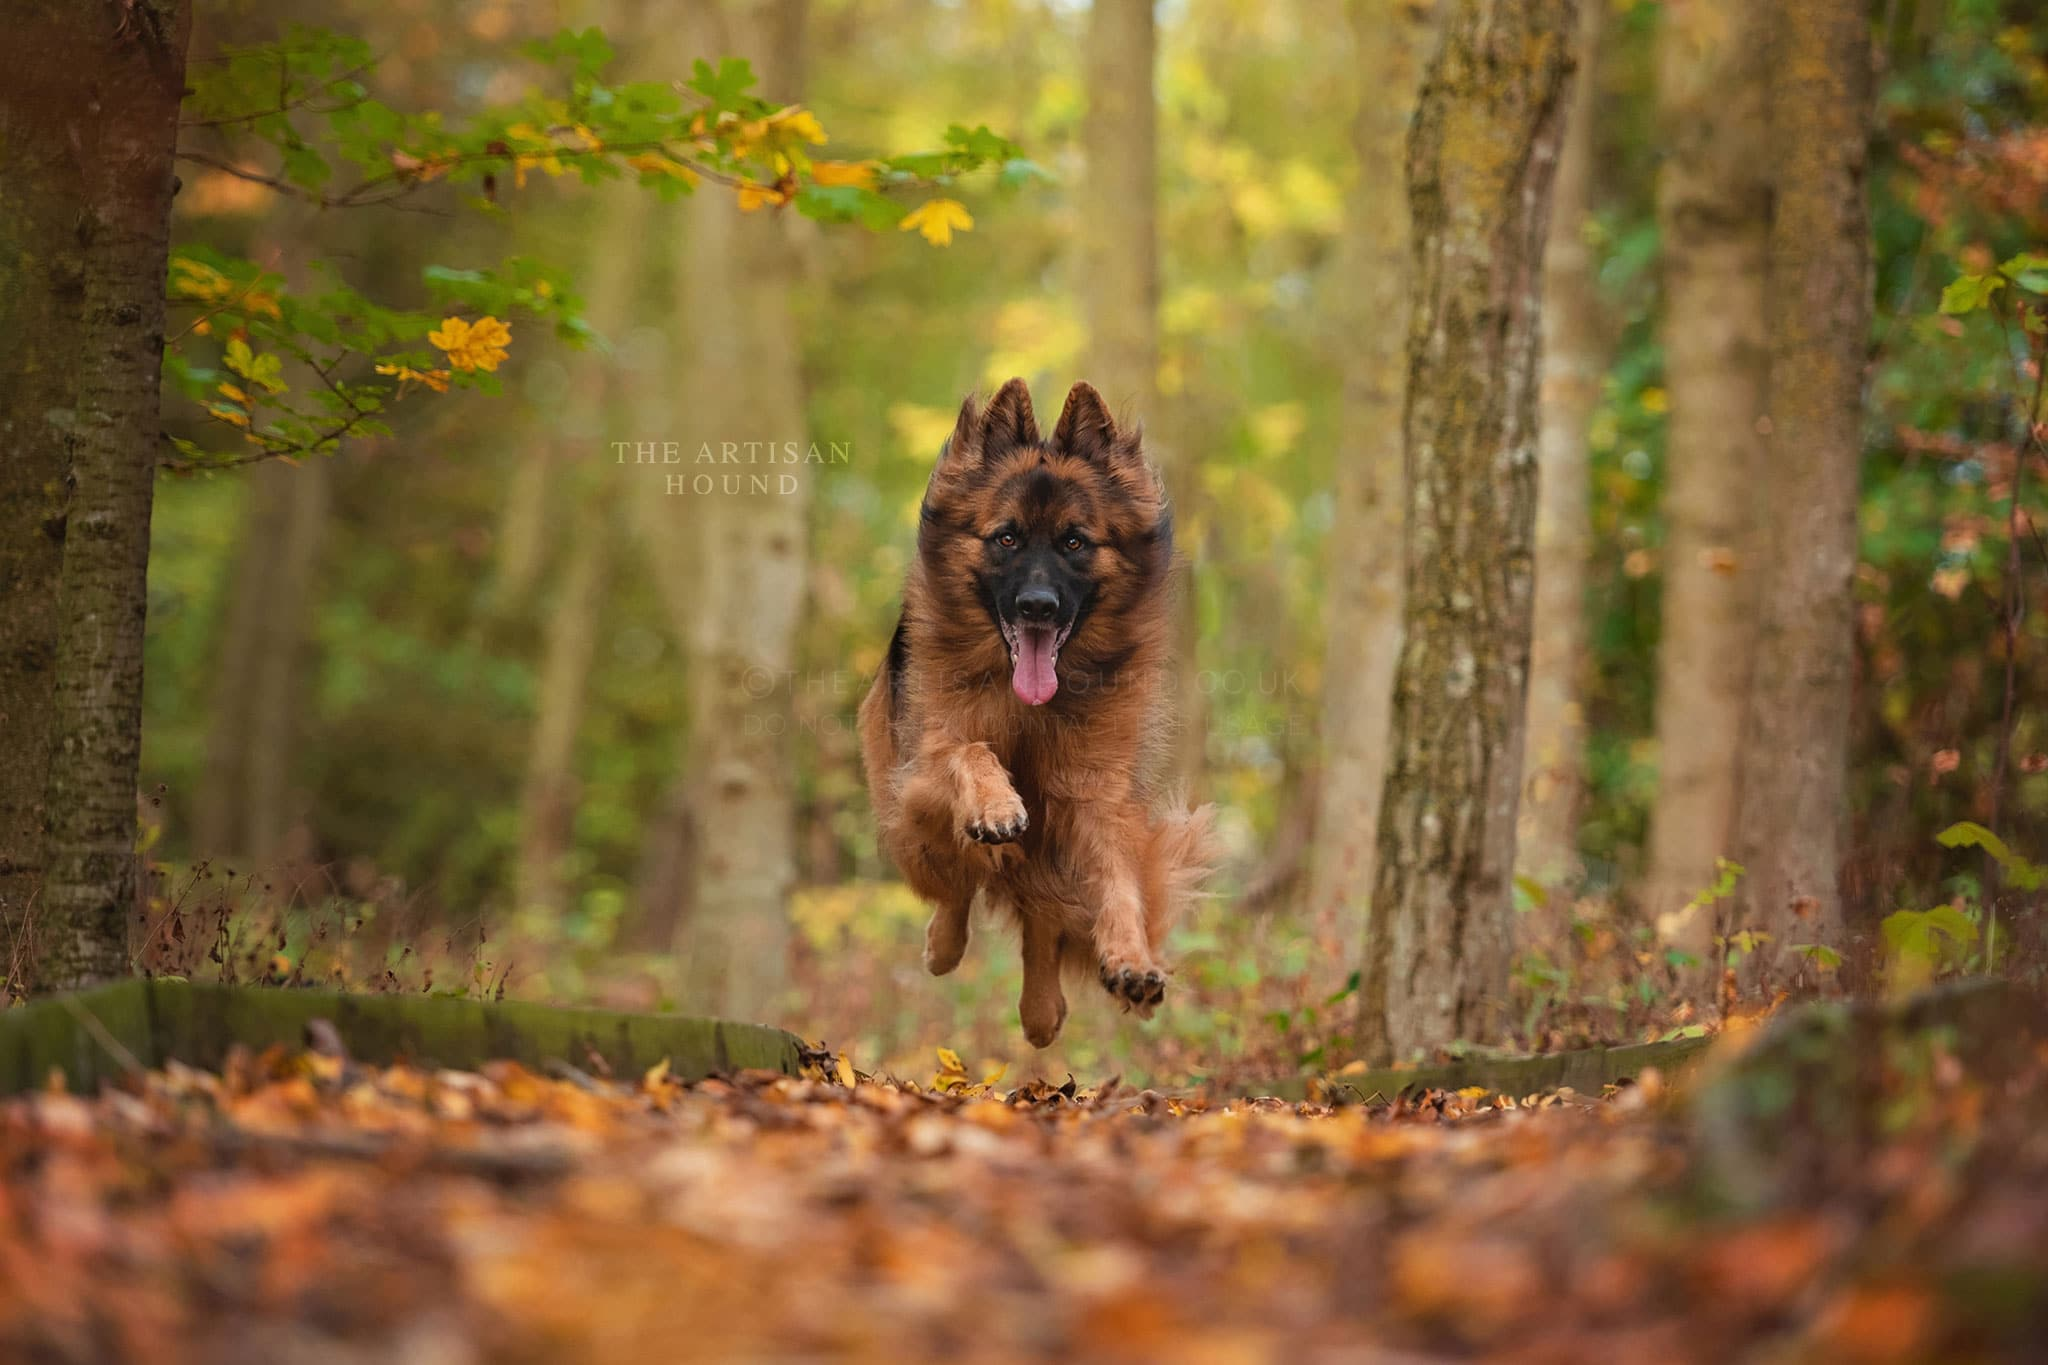 German Shepherd running through autumn leaves